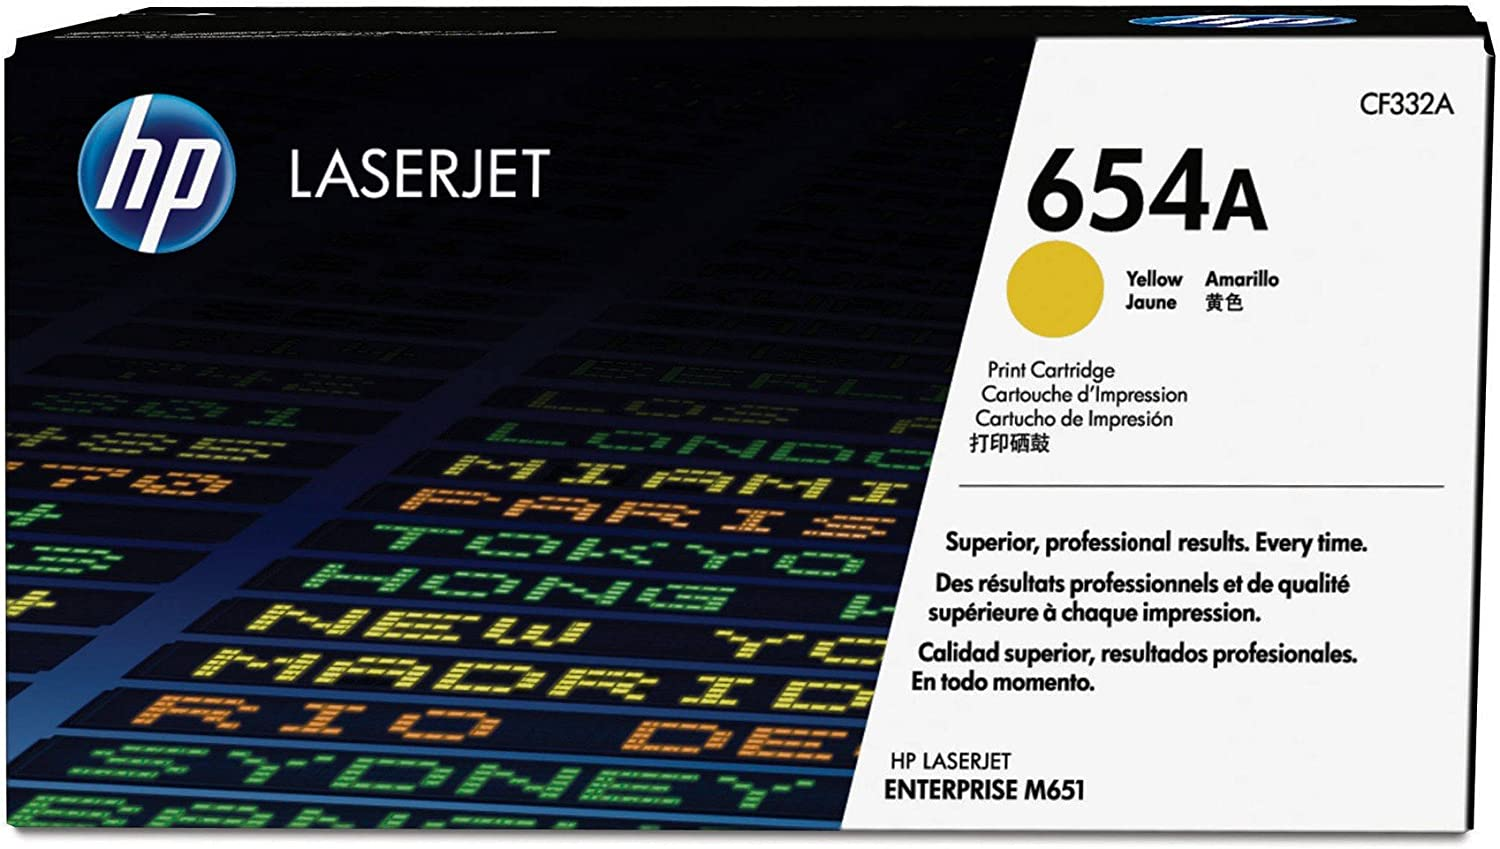 HP 654A | CF332A | Toner Cartridge | Yellow